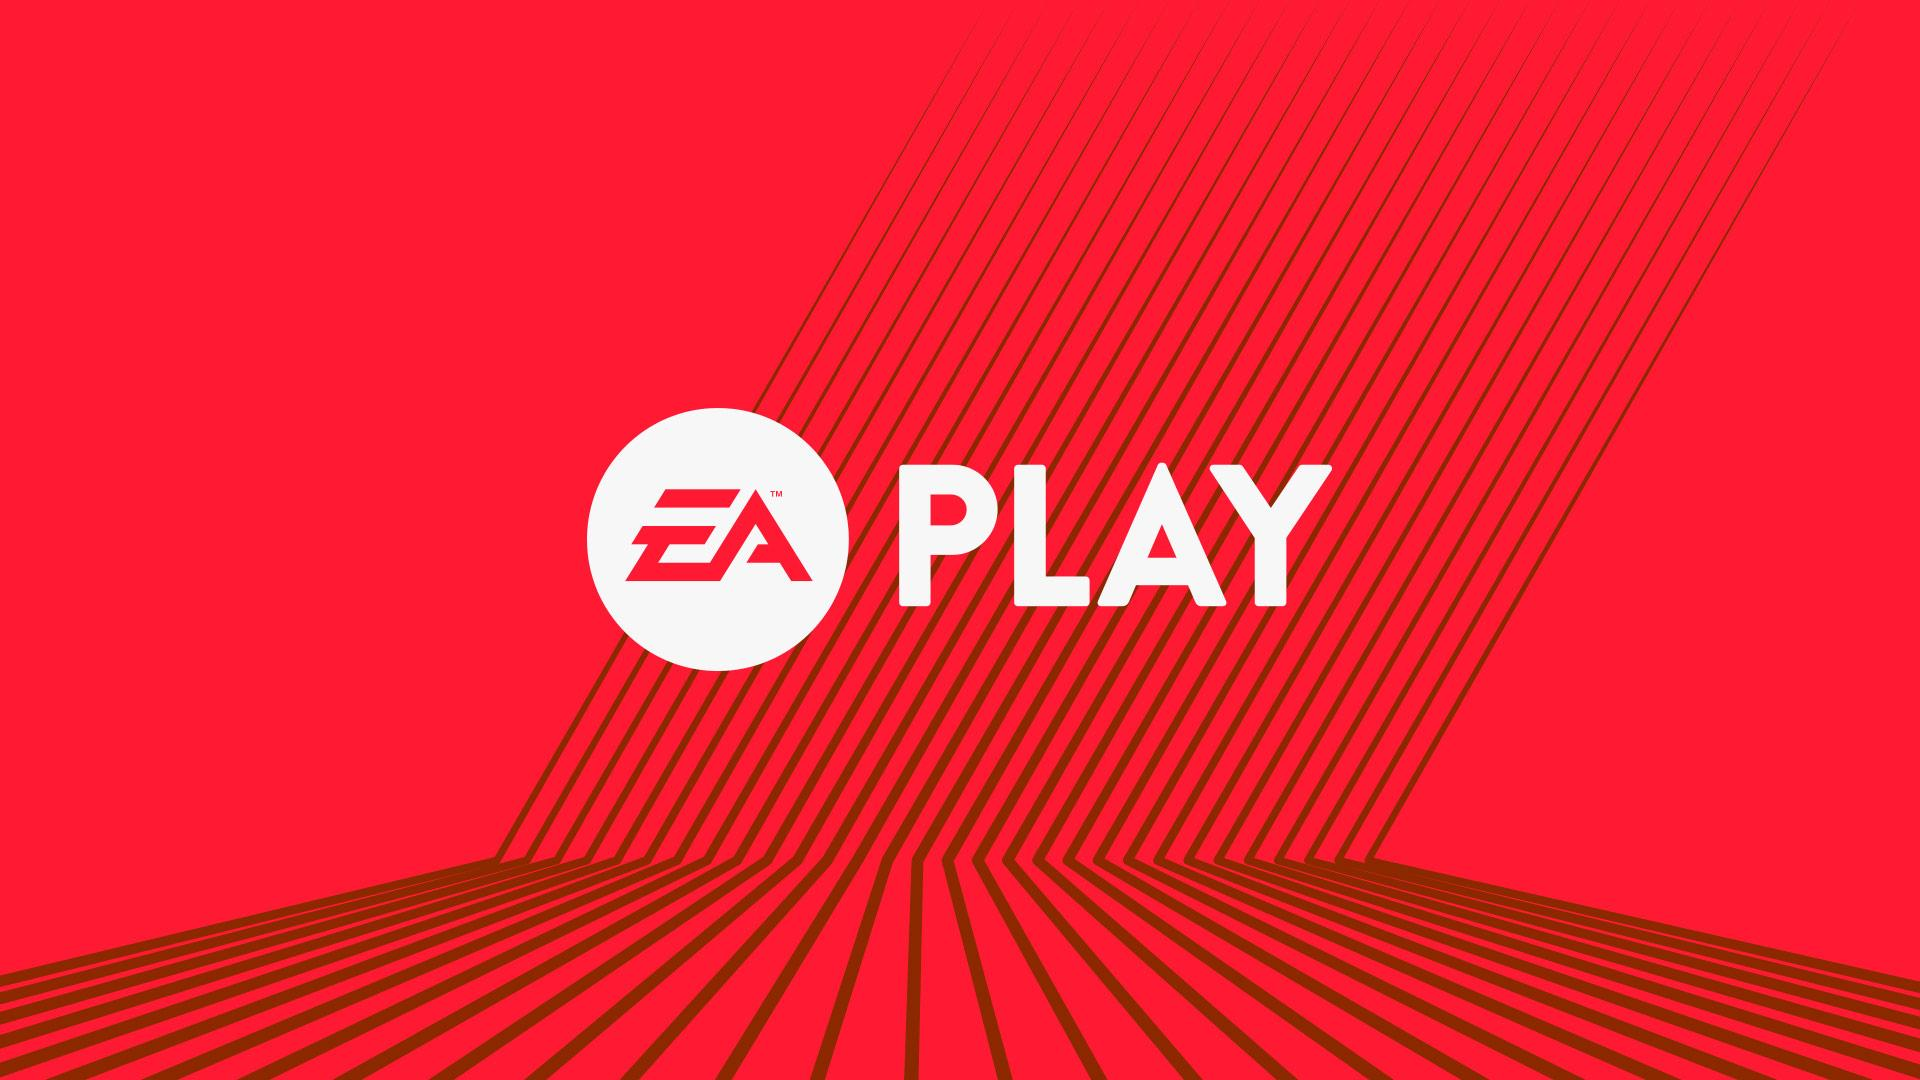 EA Play 2017 Games Lineup Unveiled